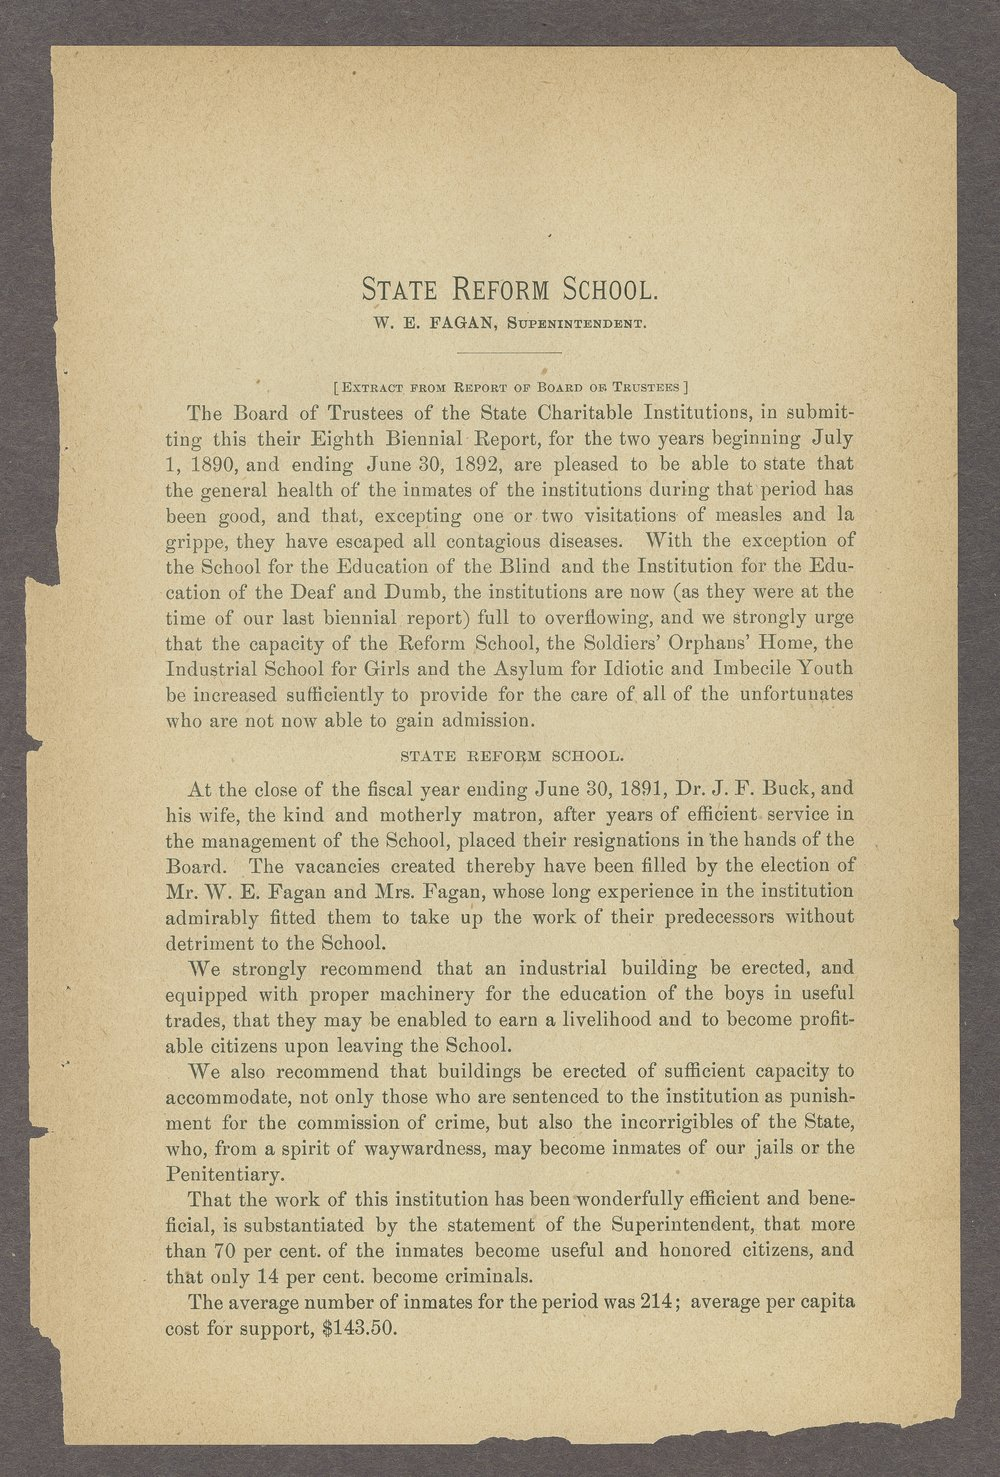 Biennial report of the State Reform School, 1892 - 5